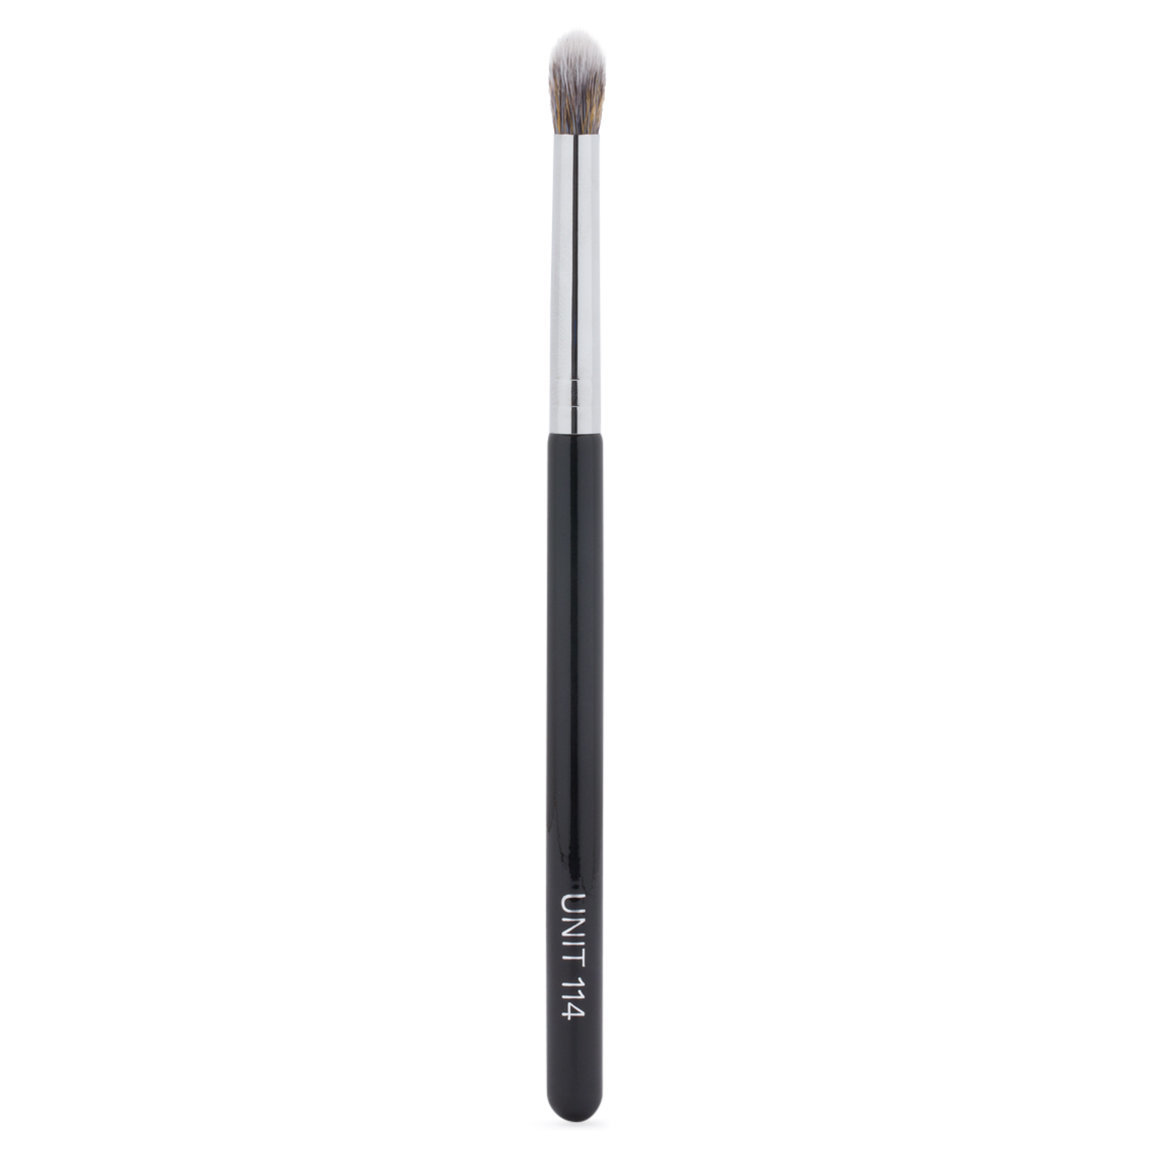 UNITS UNIT 114 Eye Brush product smear.